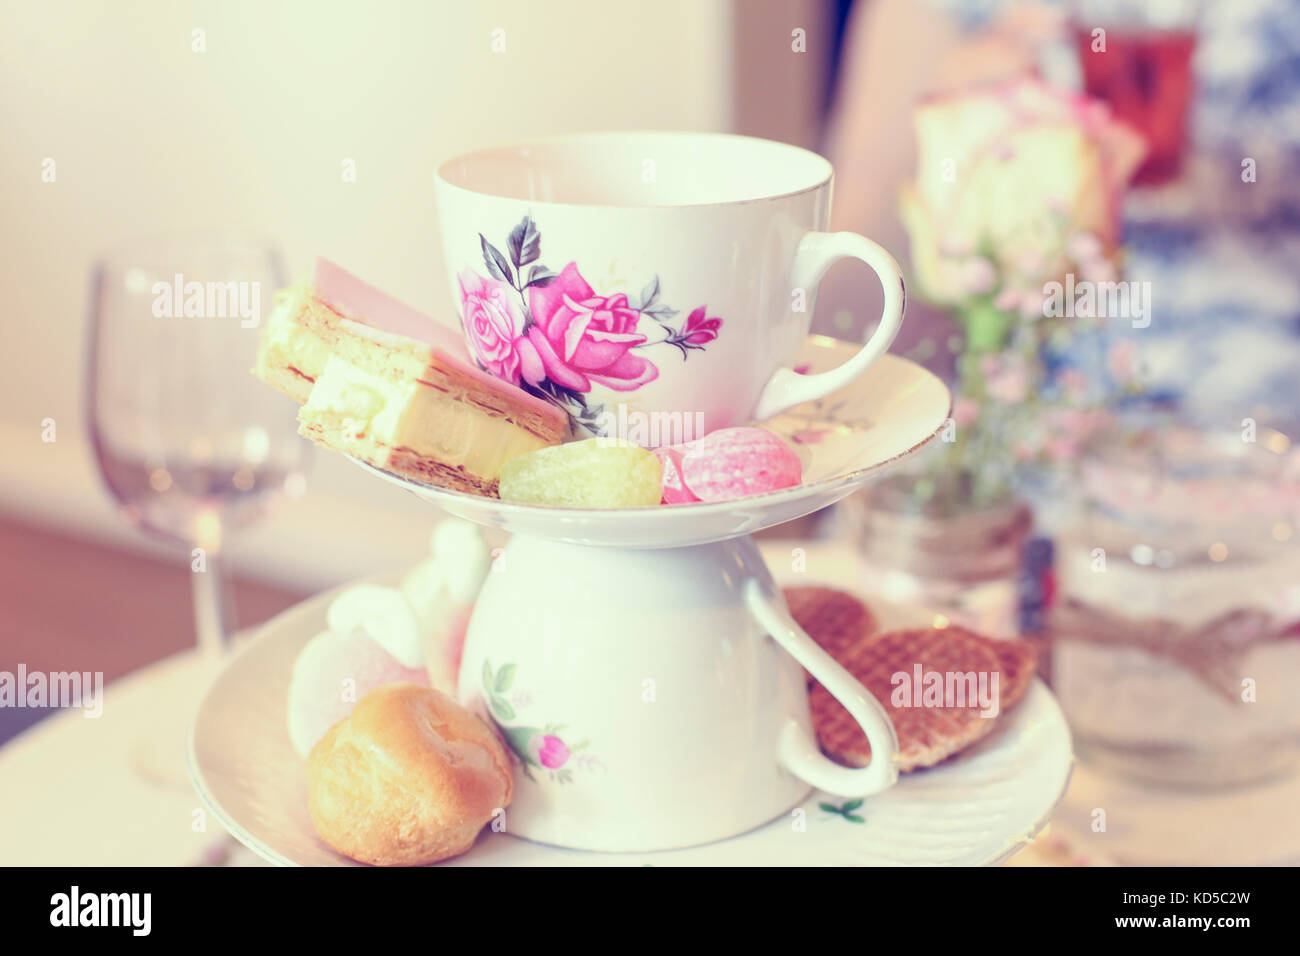 display of cookies and sweets at a wedding stock photo 163003089